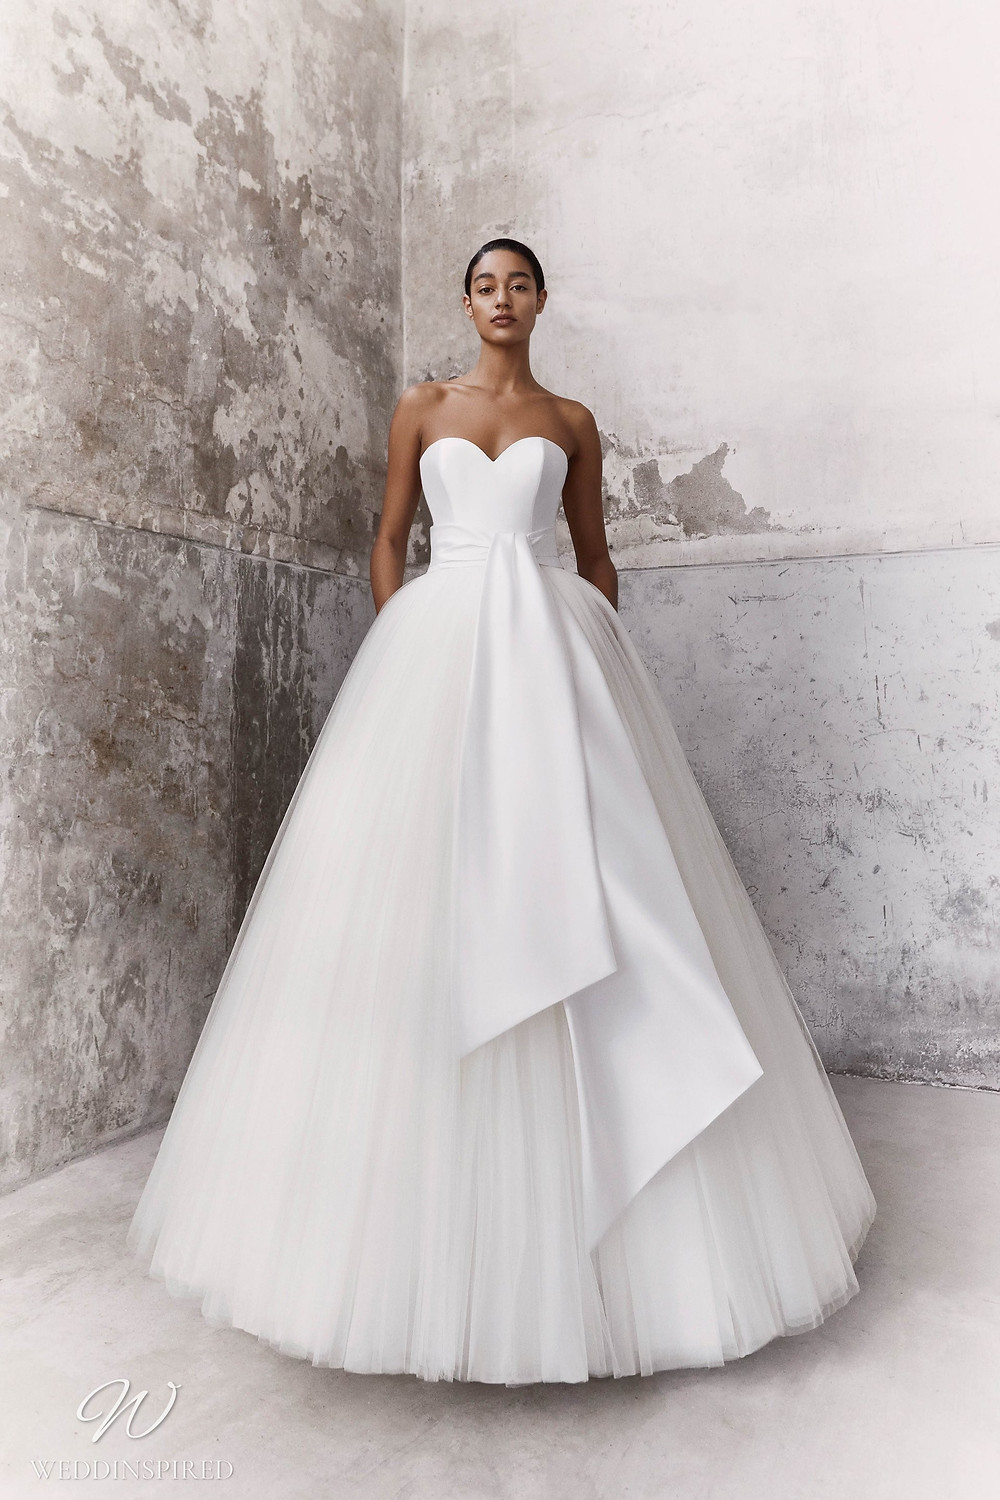 A Viktor & Rolf Fall/Winter 2021 simple strapless tulle and satin ball gown wedding dress with a sweetheart neckline